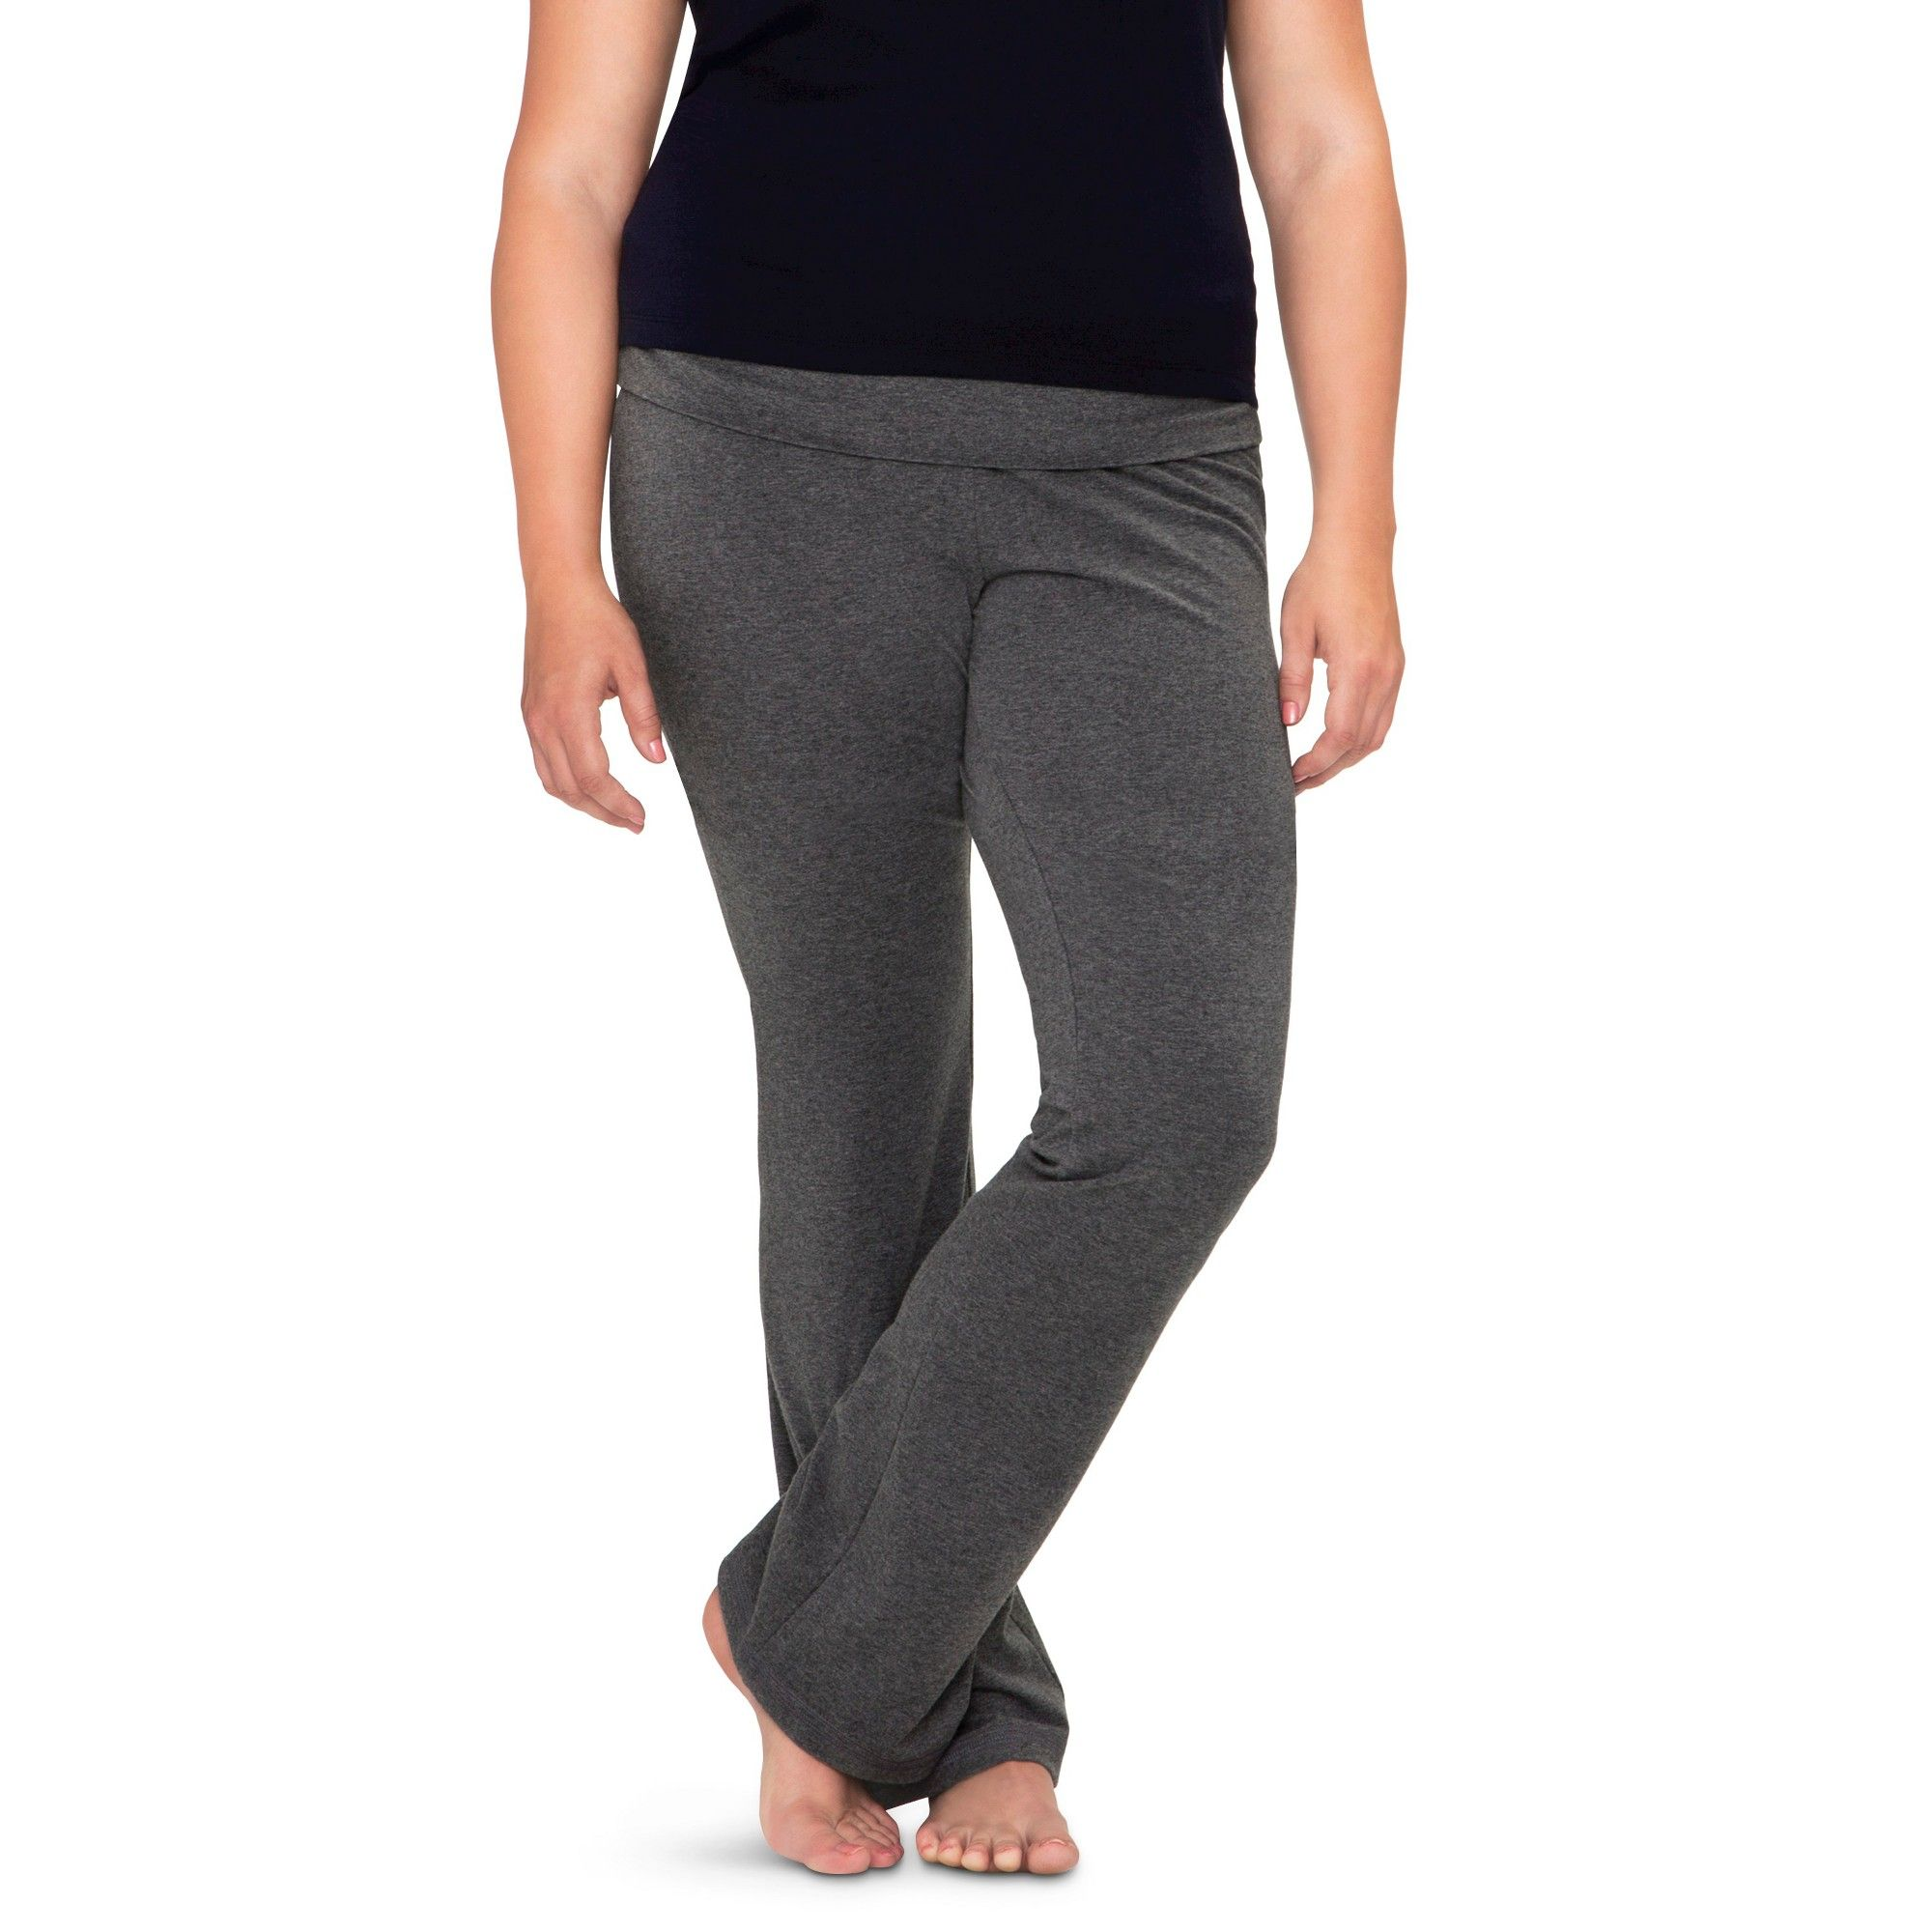 7fc7c615cdc Plus Size Bootcut Yoga Leisure Pants - Mossimo Supply Co. Gray 4X ...